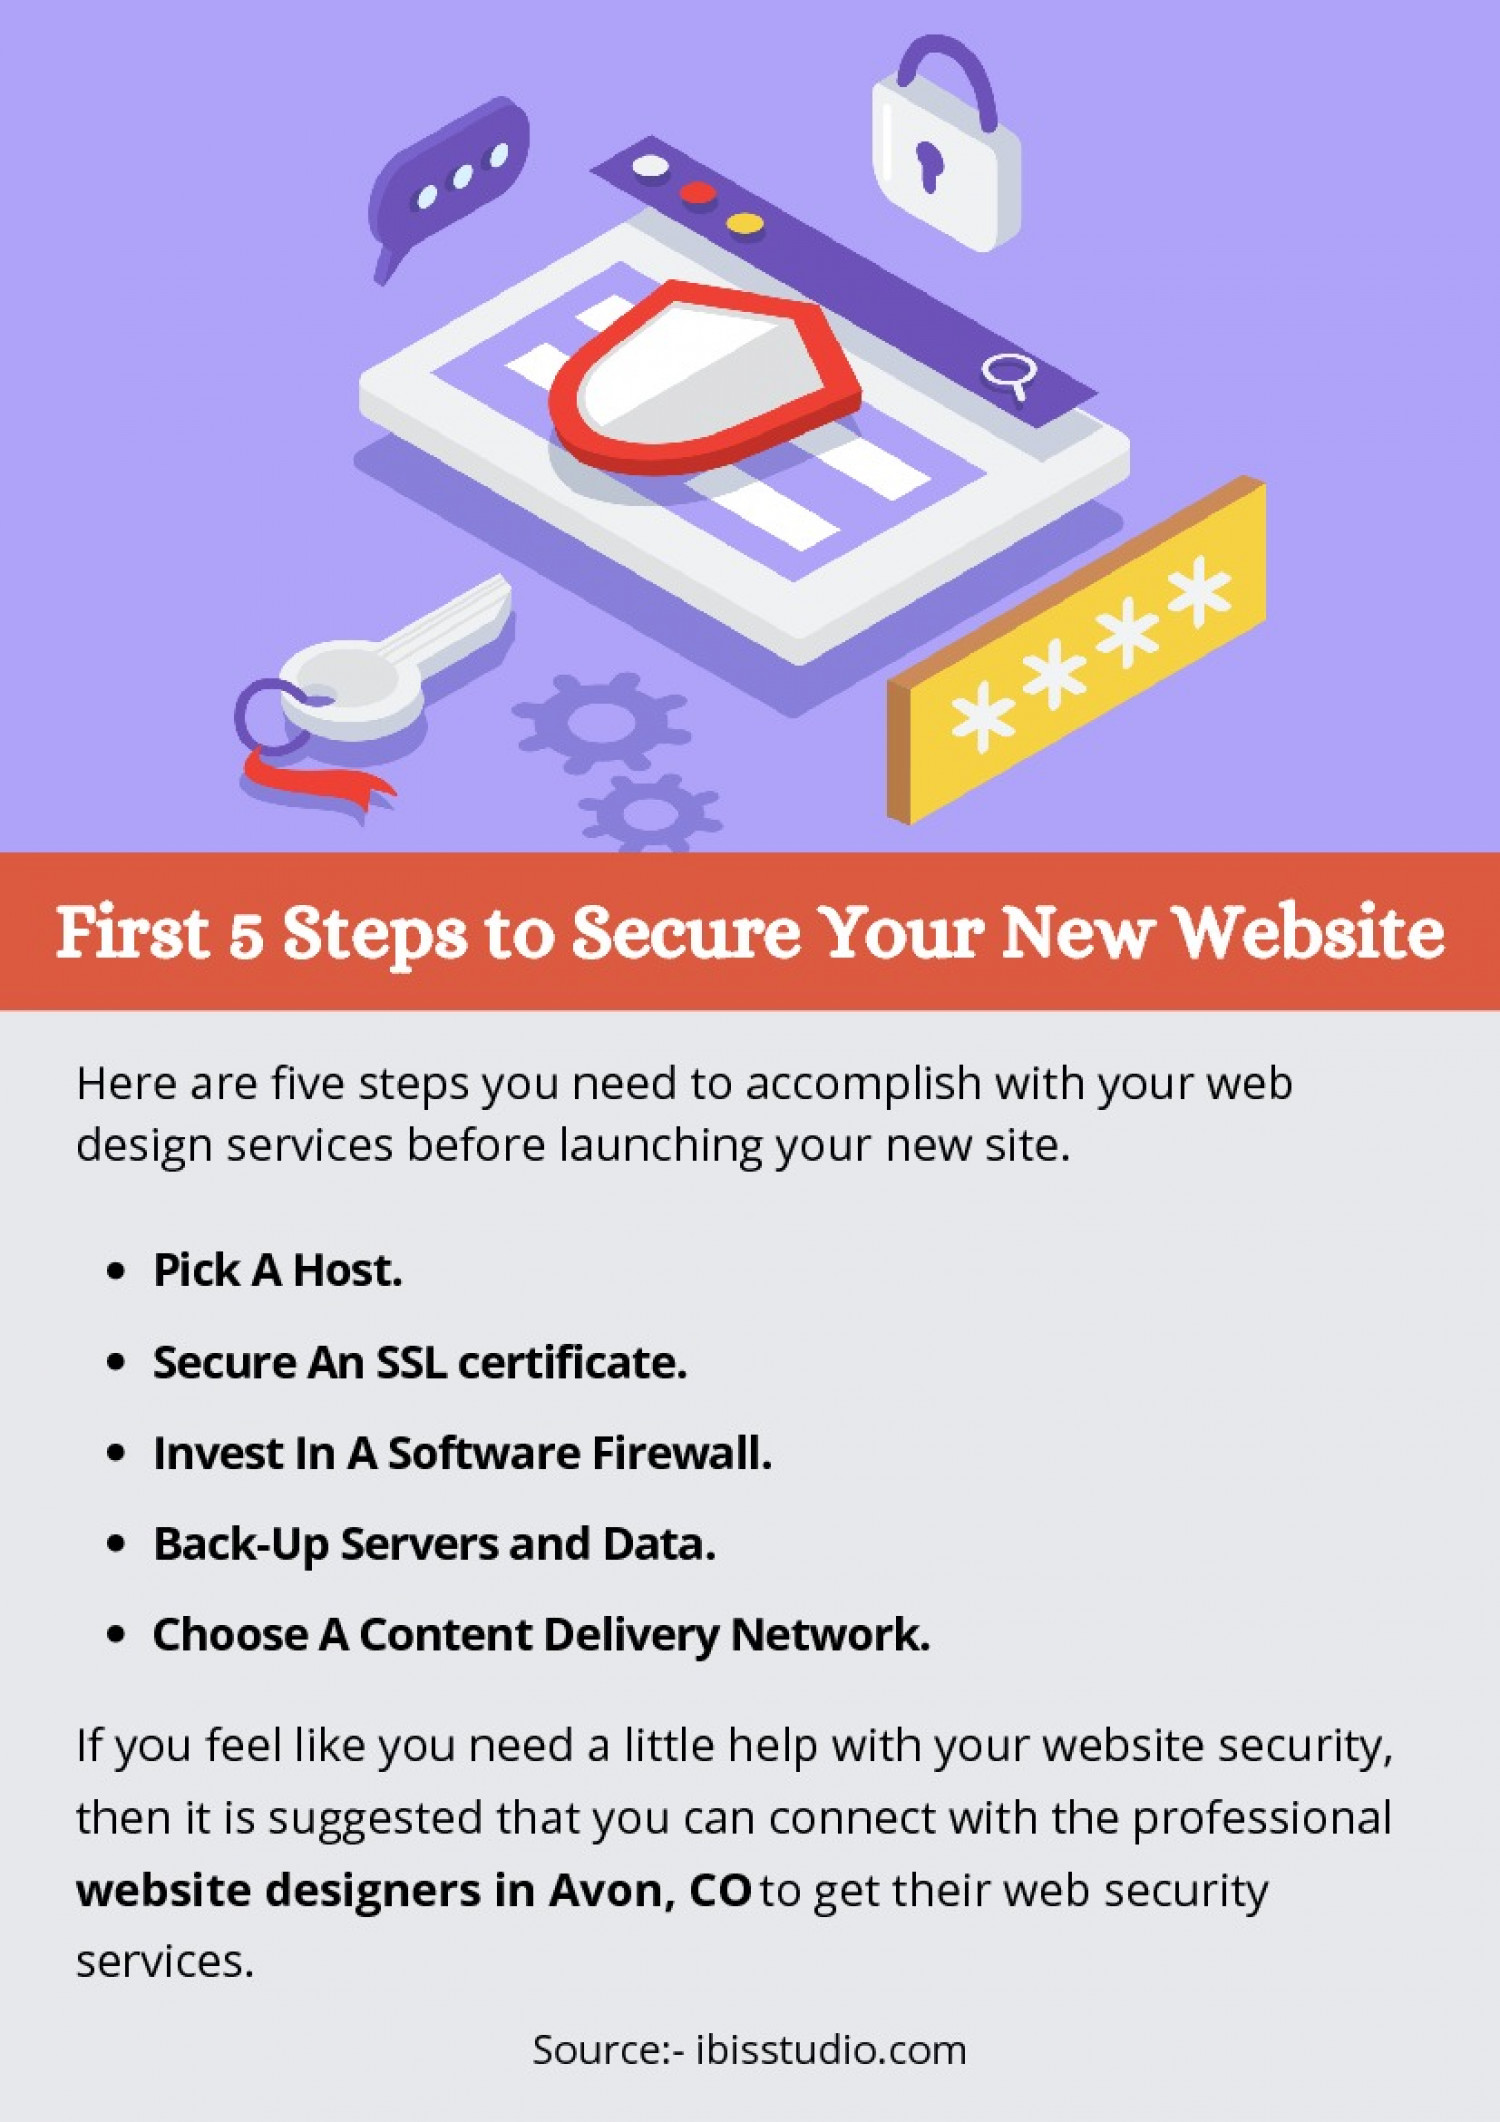 First 5 Steps to Secure Your New Website Infographic